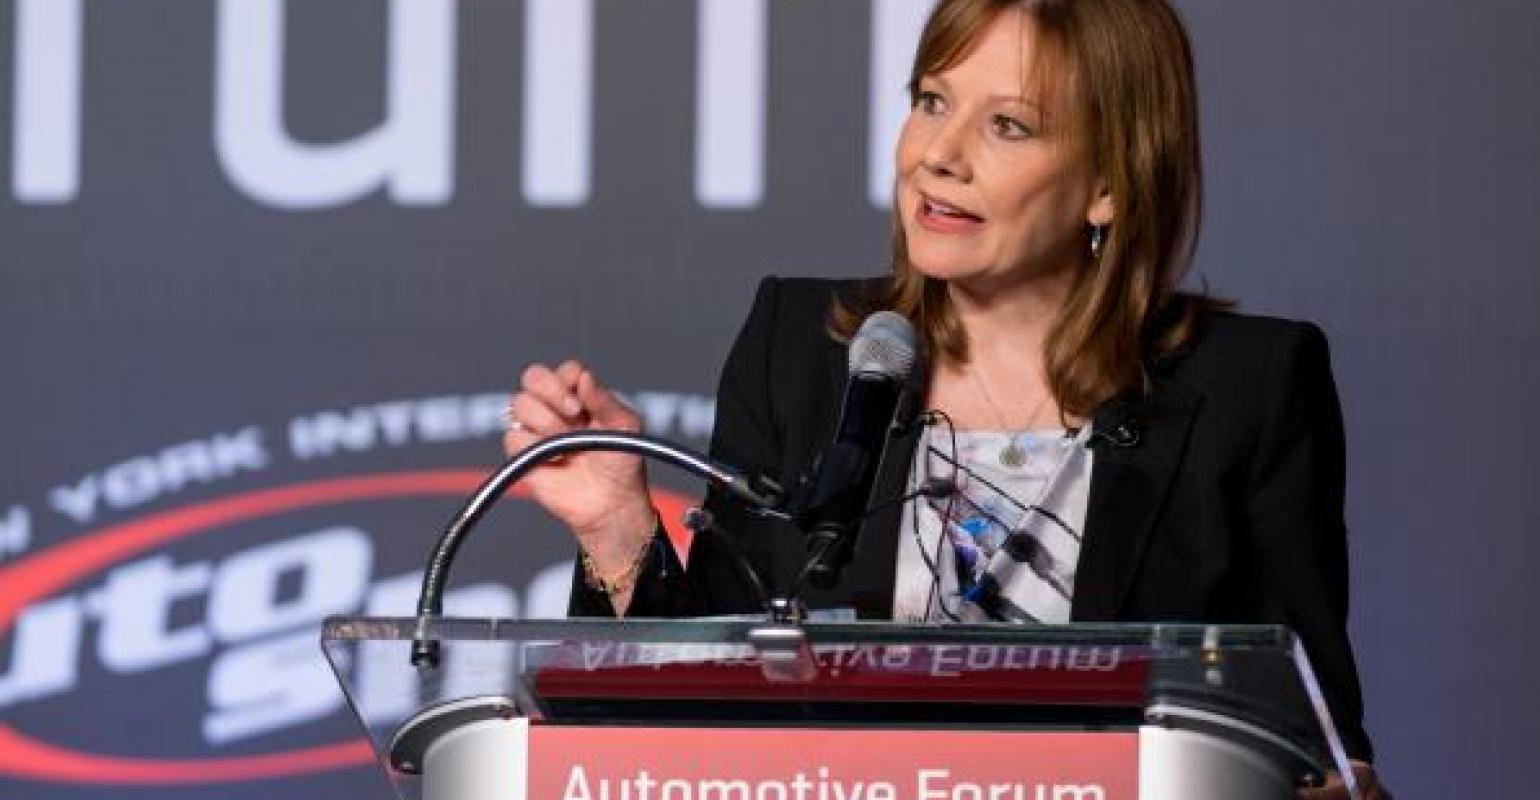 GM CEO Mary Barra said 2014 recall crisis changed her leadership style GM CEO Mary Barra said 2014 recall crisis changed her leadership style new foto